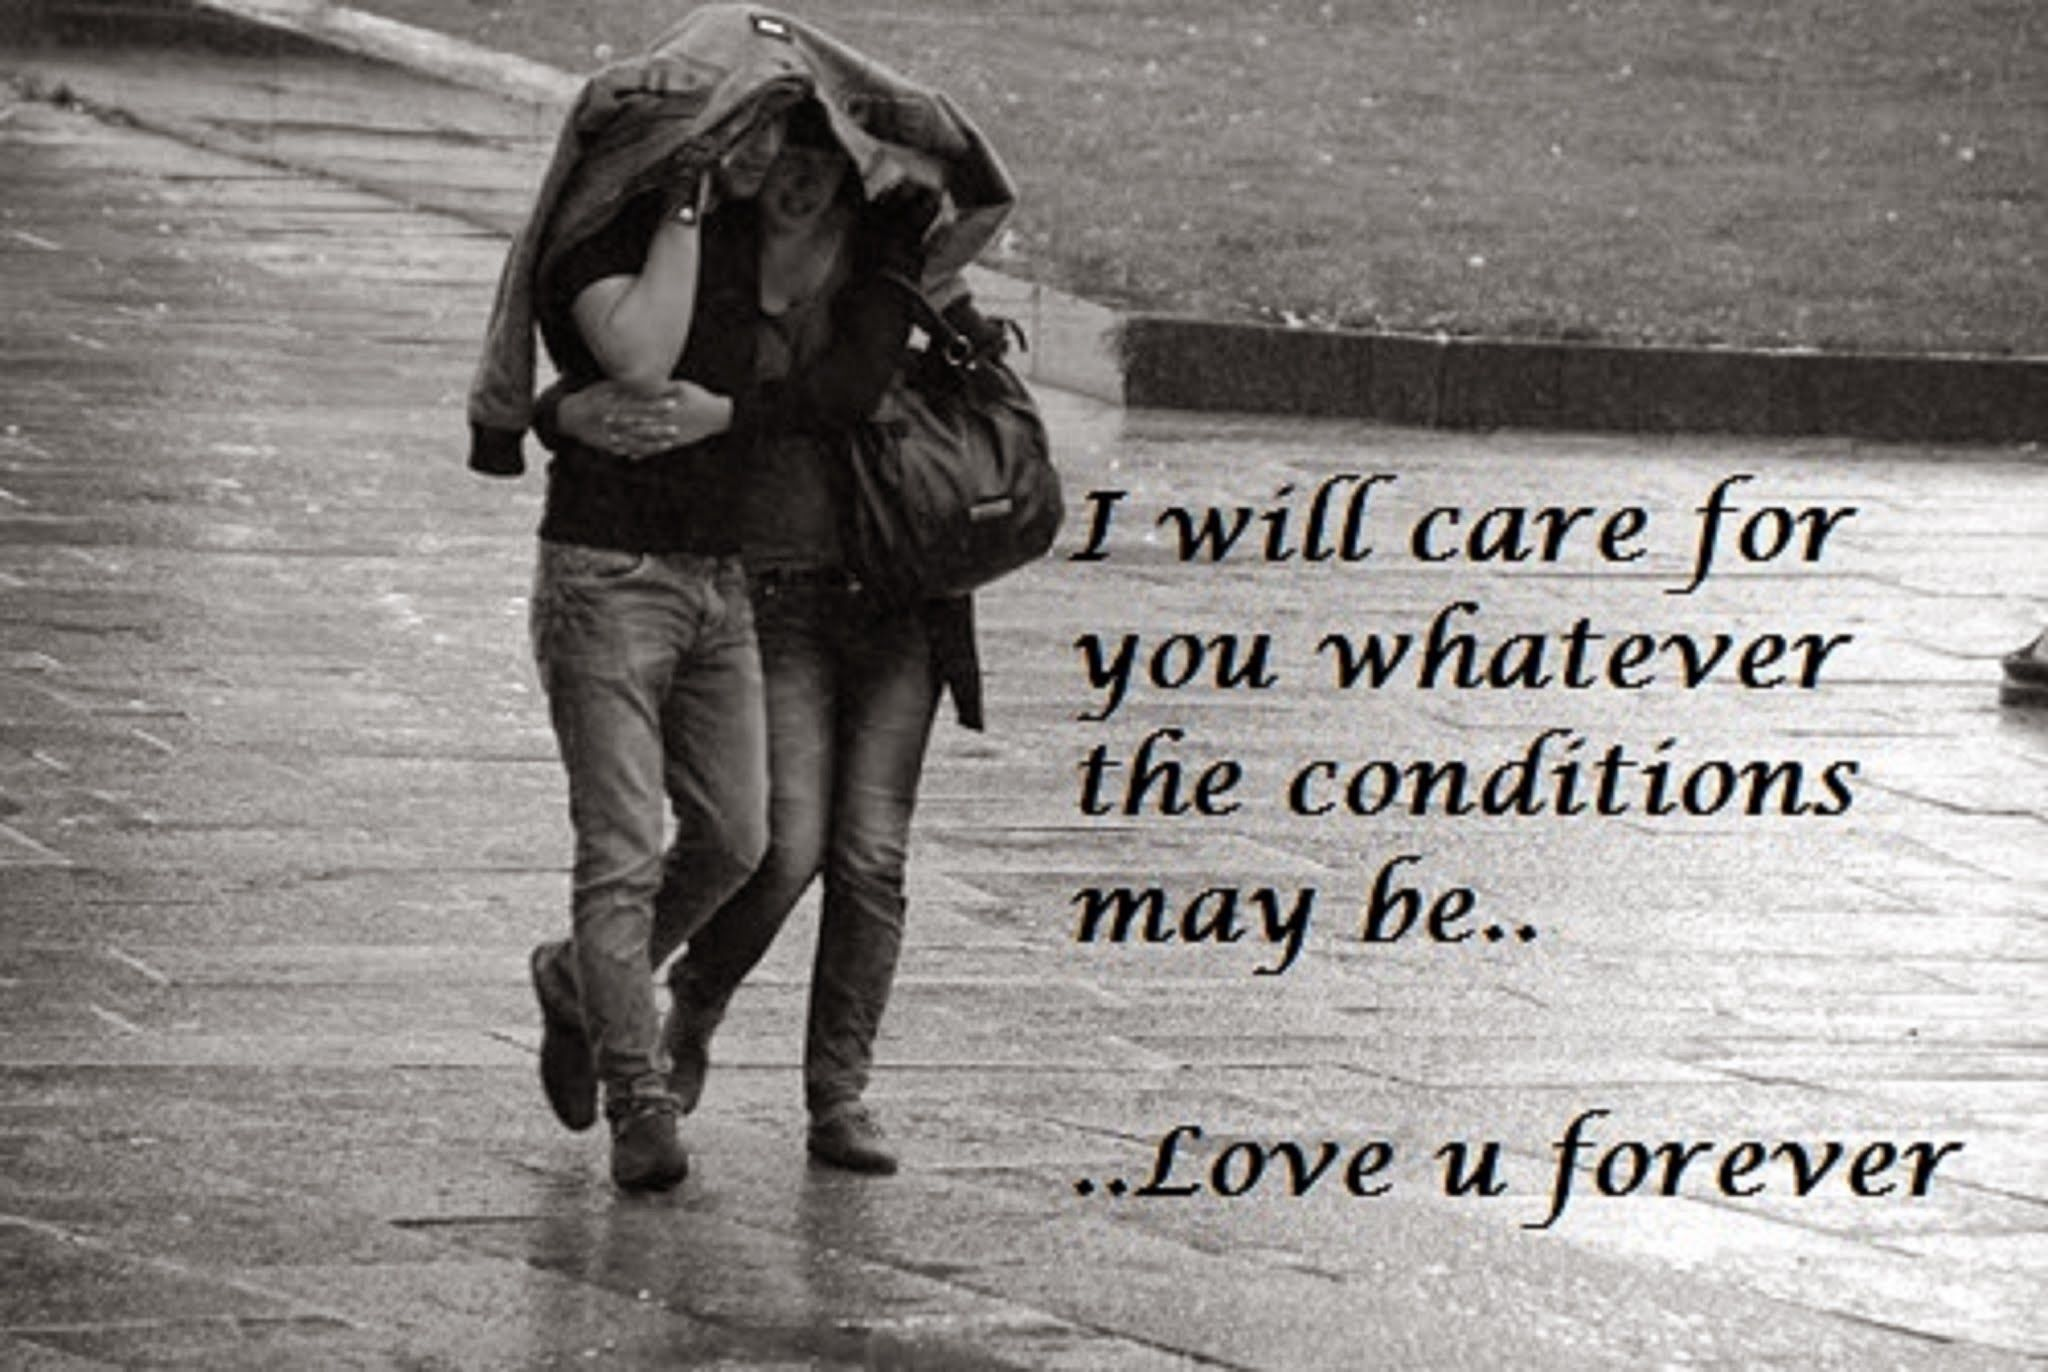 Rainy Day Wallpaper With Quotes In Hindi Love You Forever Pictures Photos And Images For Facebook